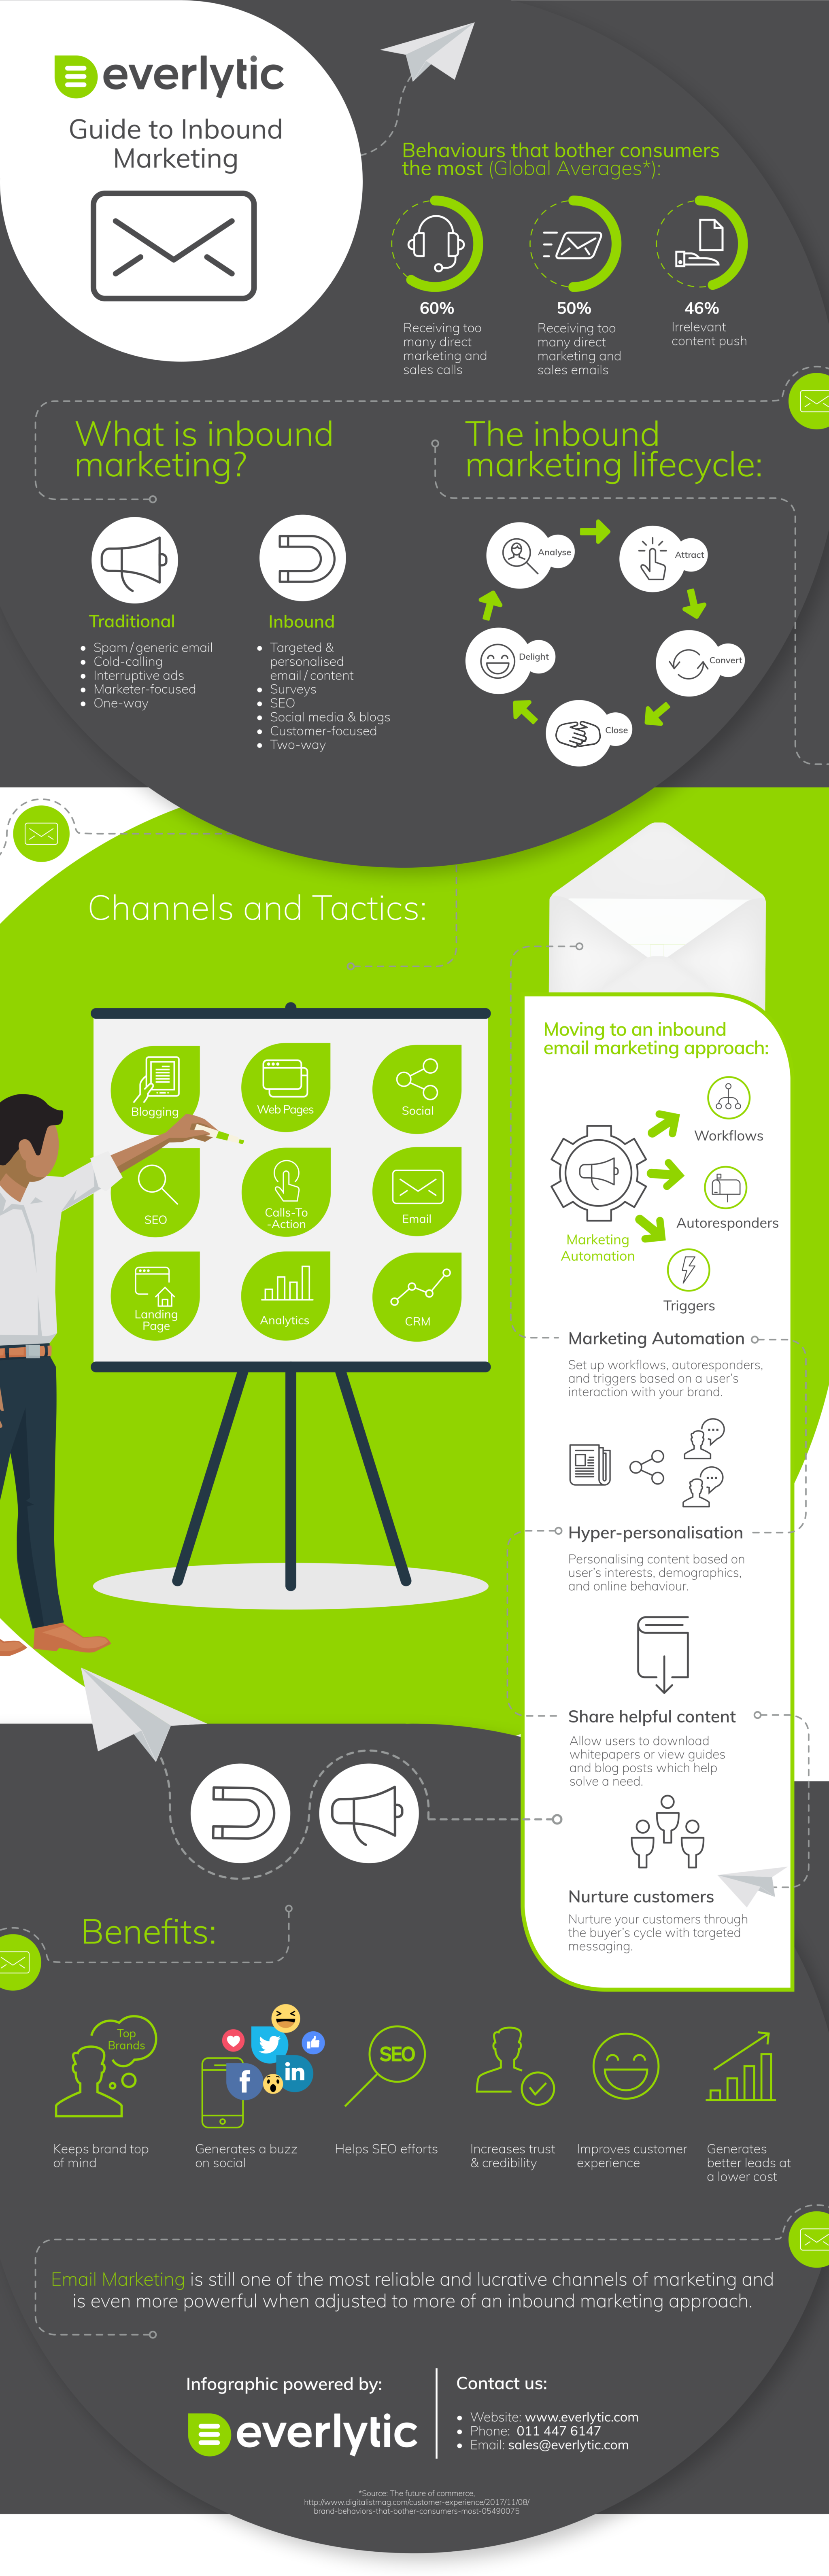 Everlytic Inbound Marketing Infographic New | Email and SMS Marketing Software | Guide to Inbound Marketing - Infographic